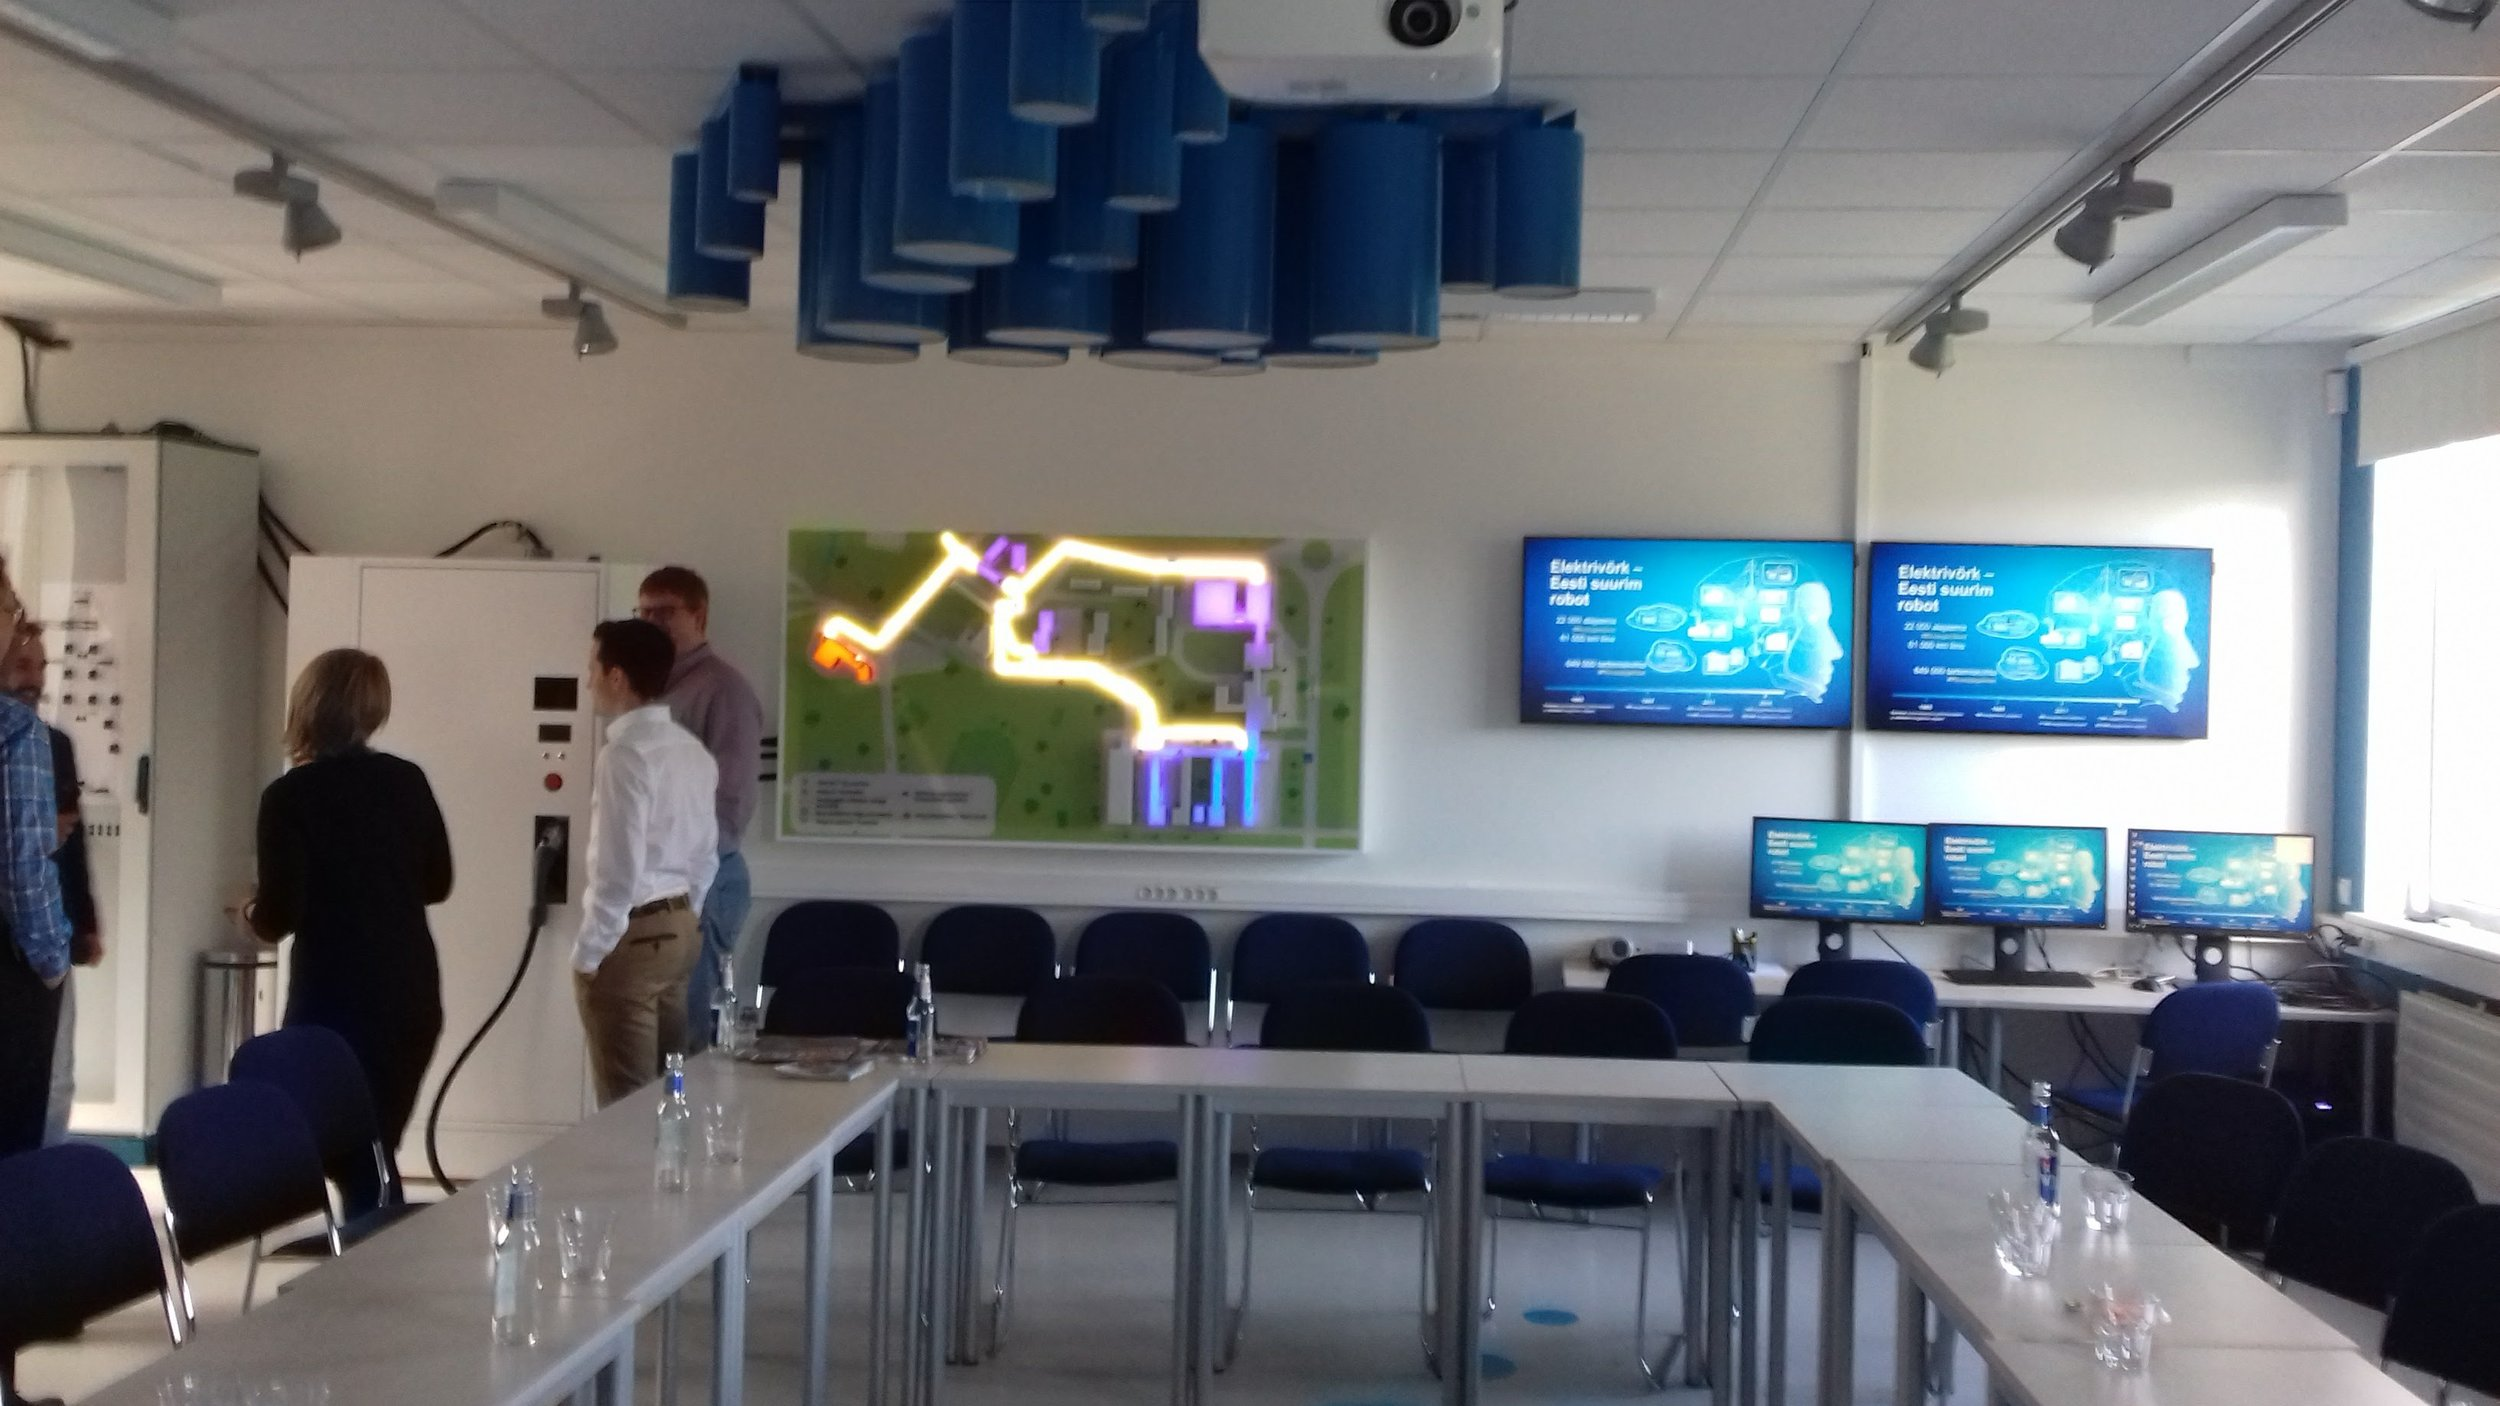 The local electricity utility sponsors an interactive training room with an electrical engineering theme